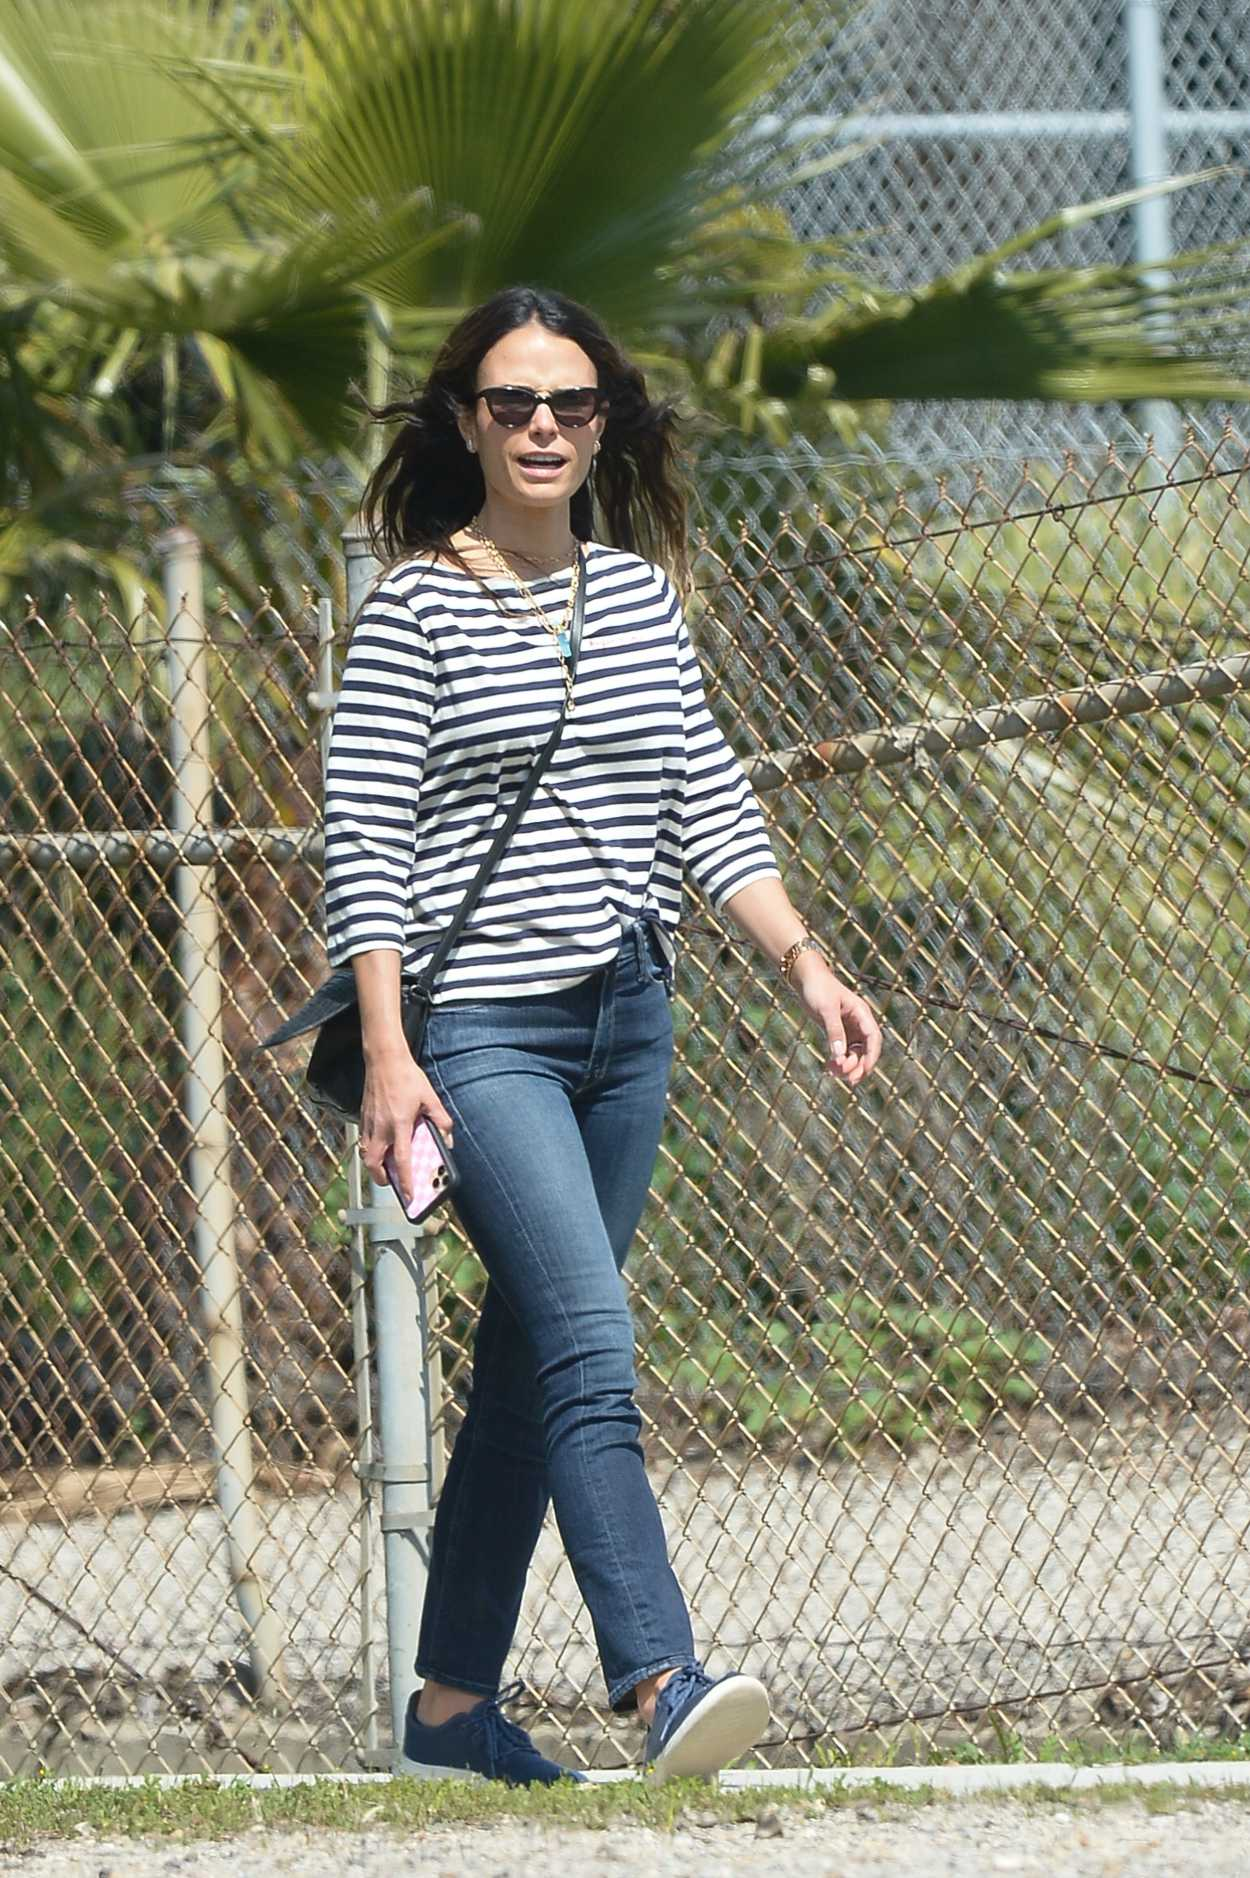 Jordana Brewster in a Striped Long Sleeves T-Shirt Was Spotted Out in Los Angeles 03/31/2020